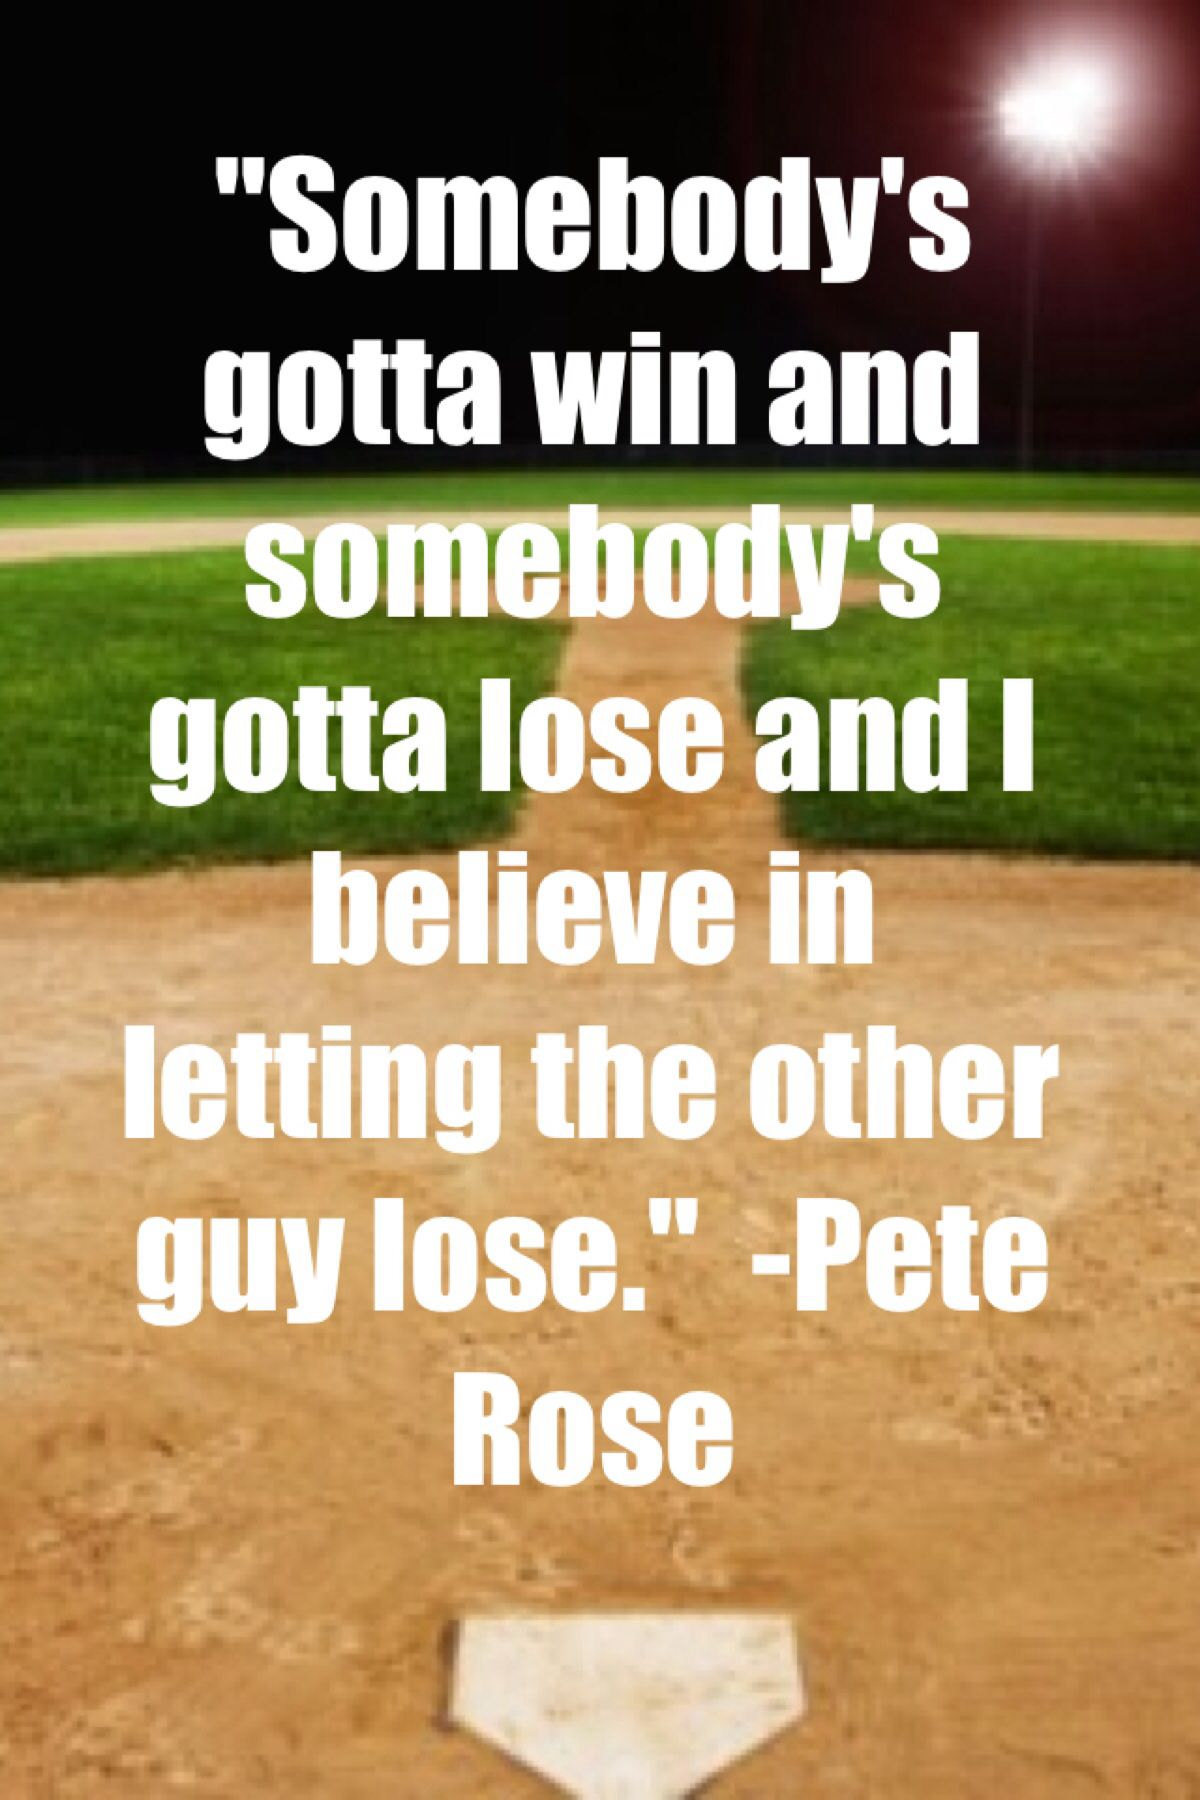 Baseball Love Quotes Love It  Nothin' Soft About Softball  Pinterest  Pete Rose